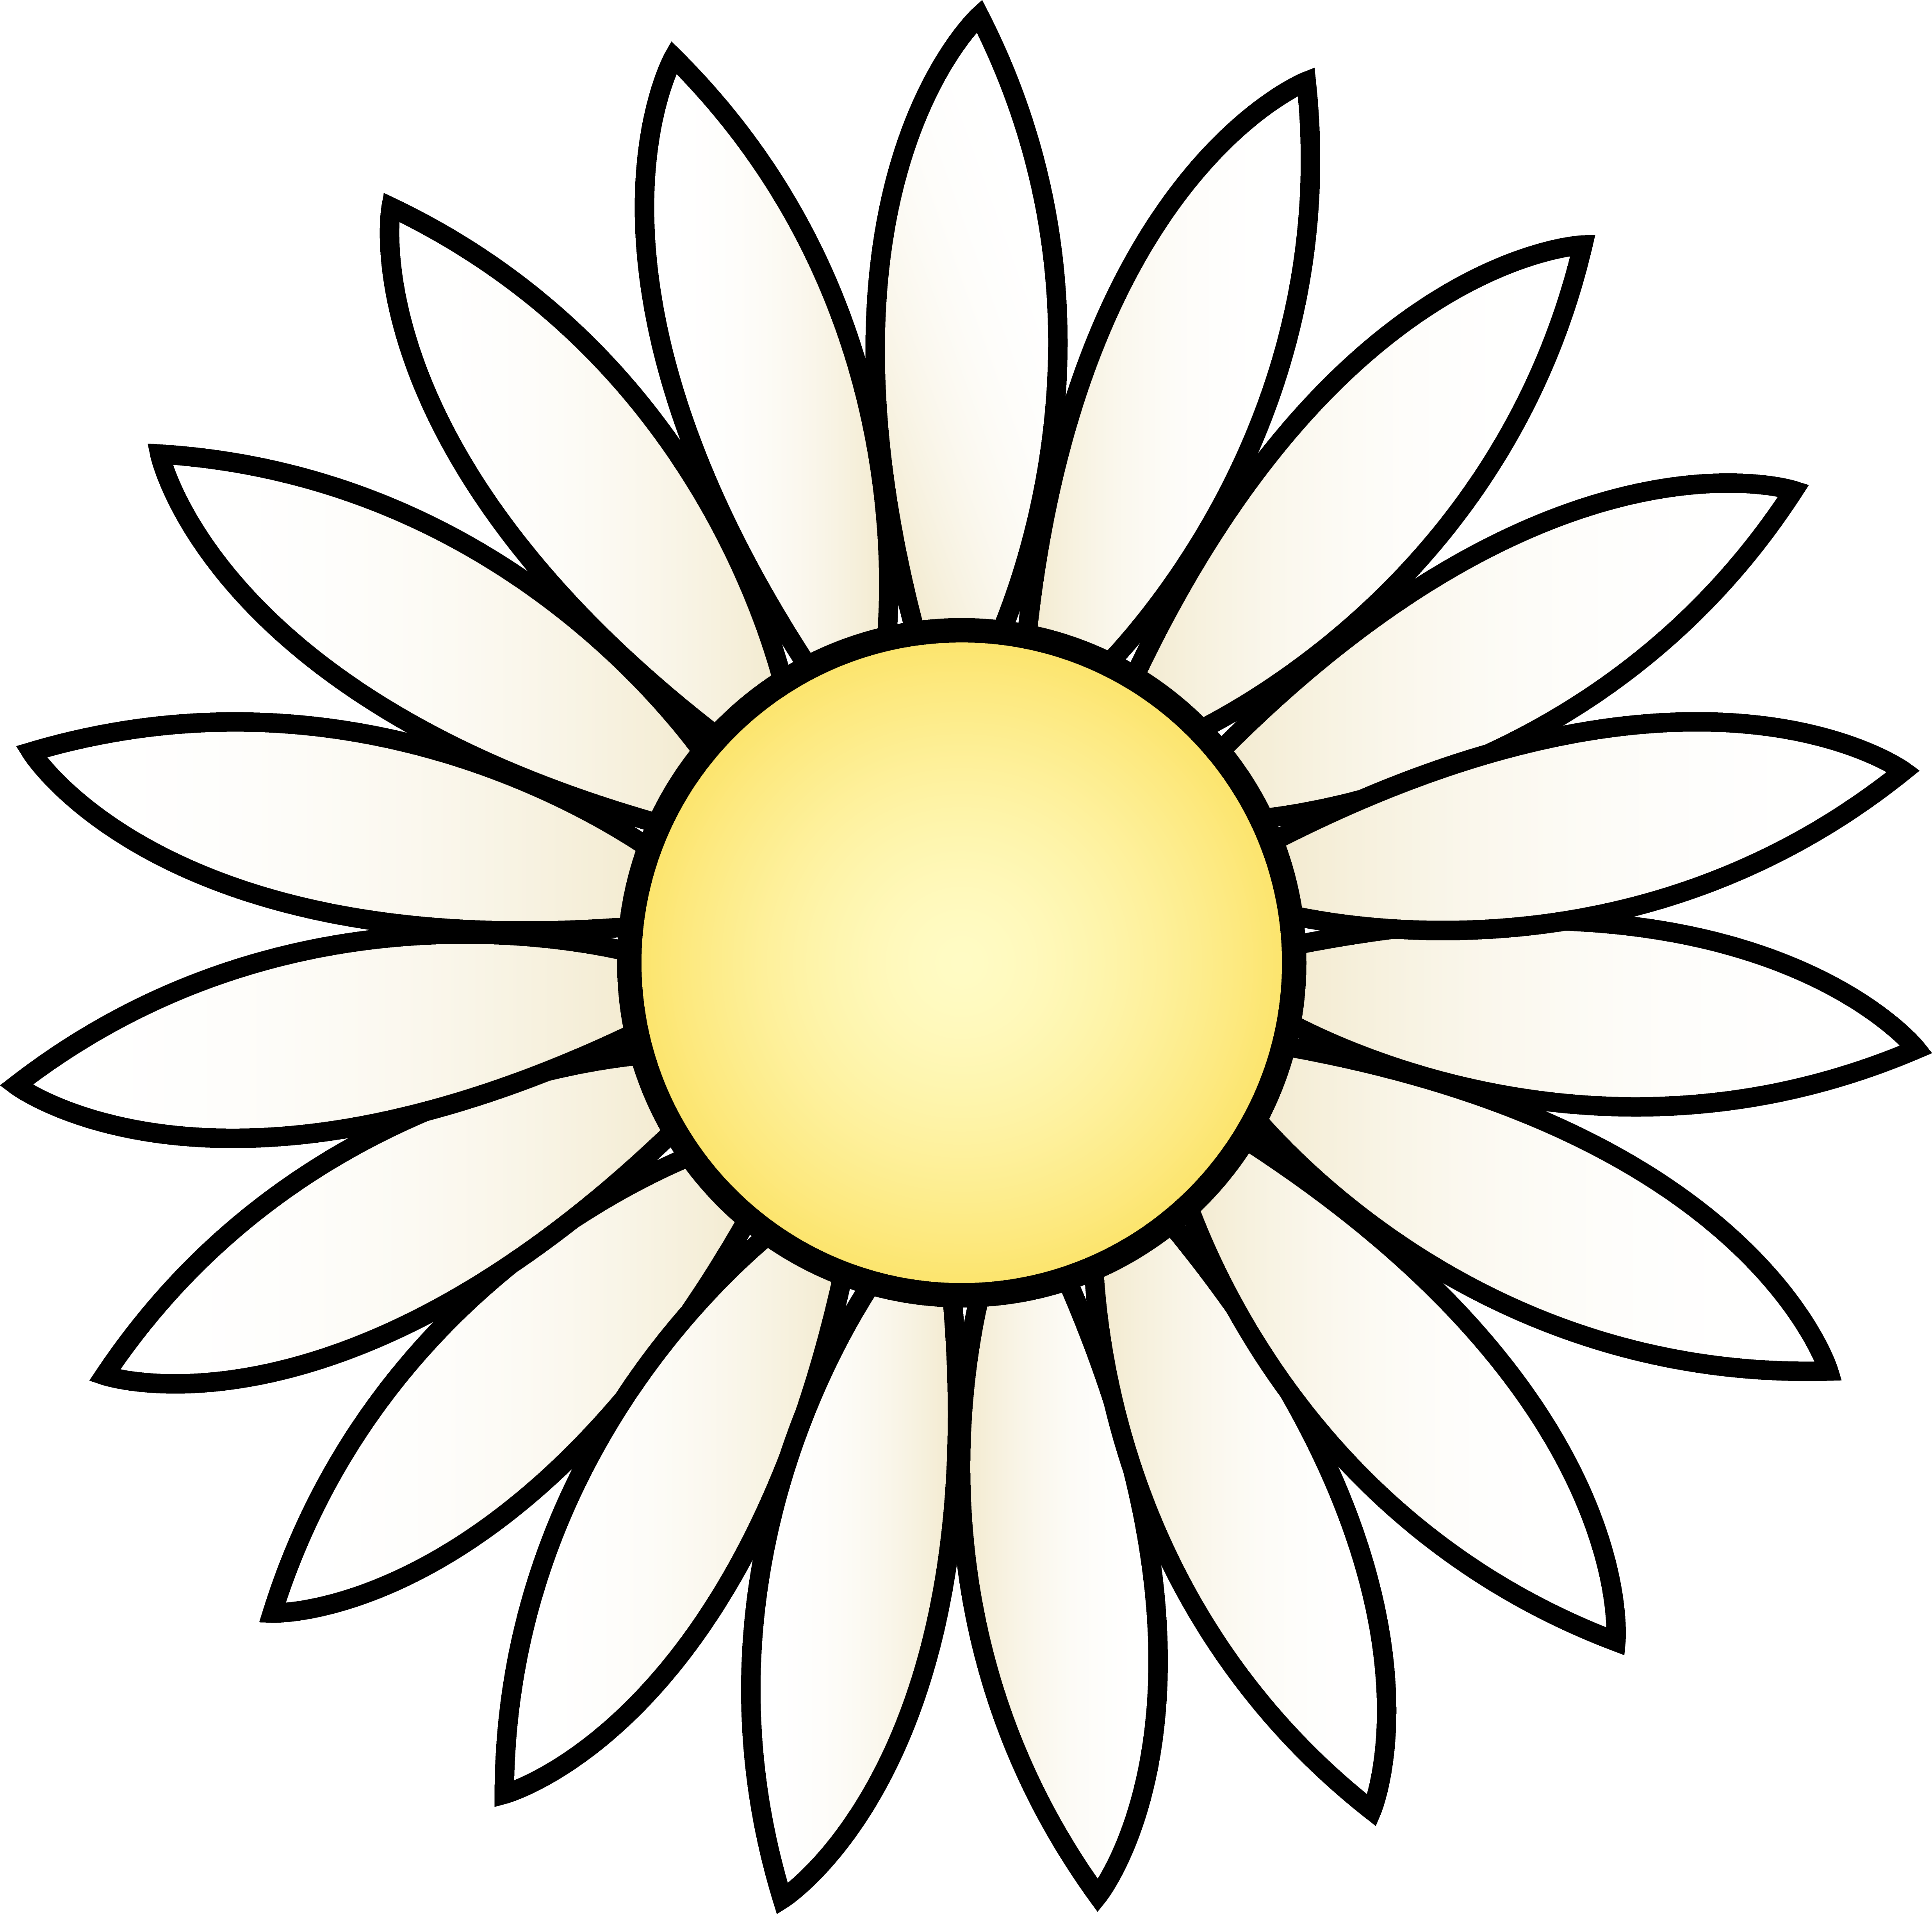 Free Daisy Flower Template, Download Free Clip Art, Free.